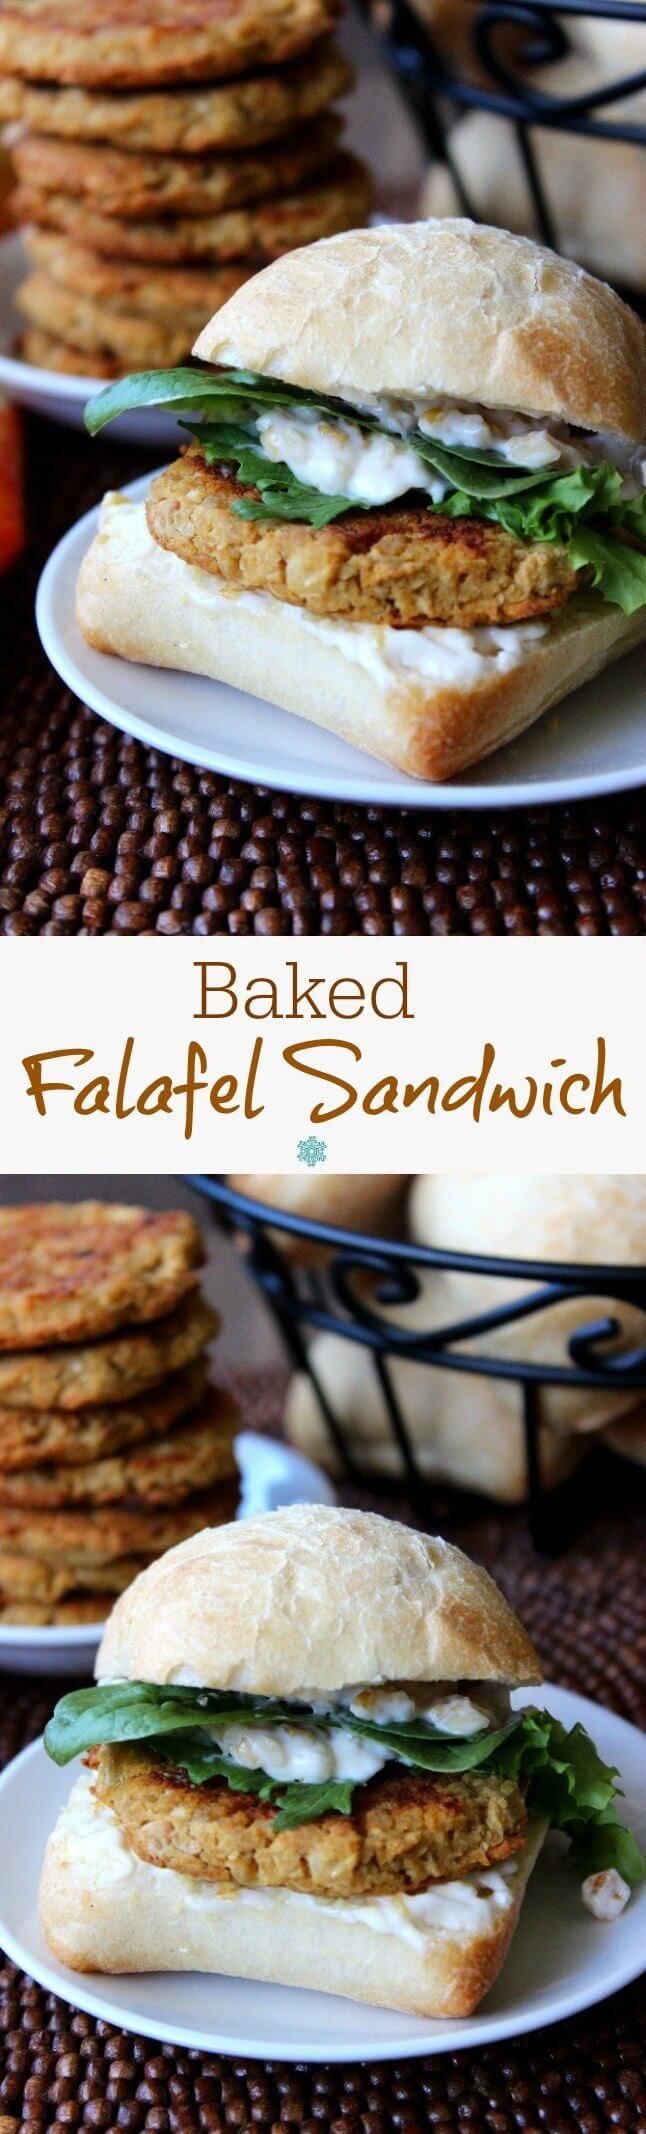 Baked Falafel makes a fantastic sandwich and is more healthy than the deep fried version. The flavors are all there and they are great as an entree too.